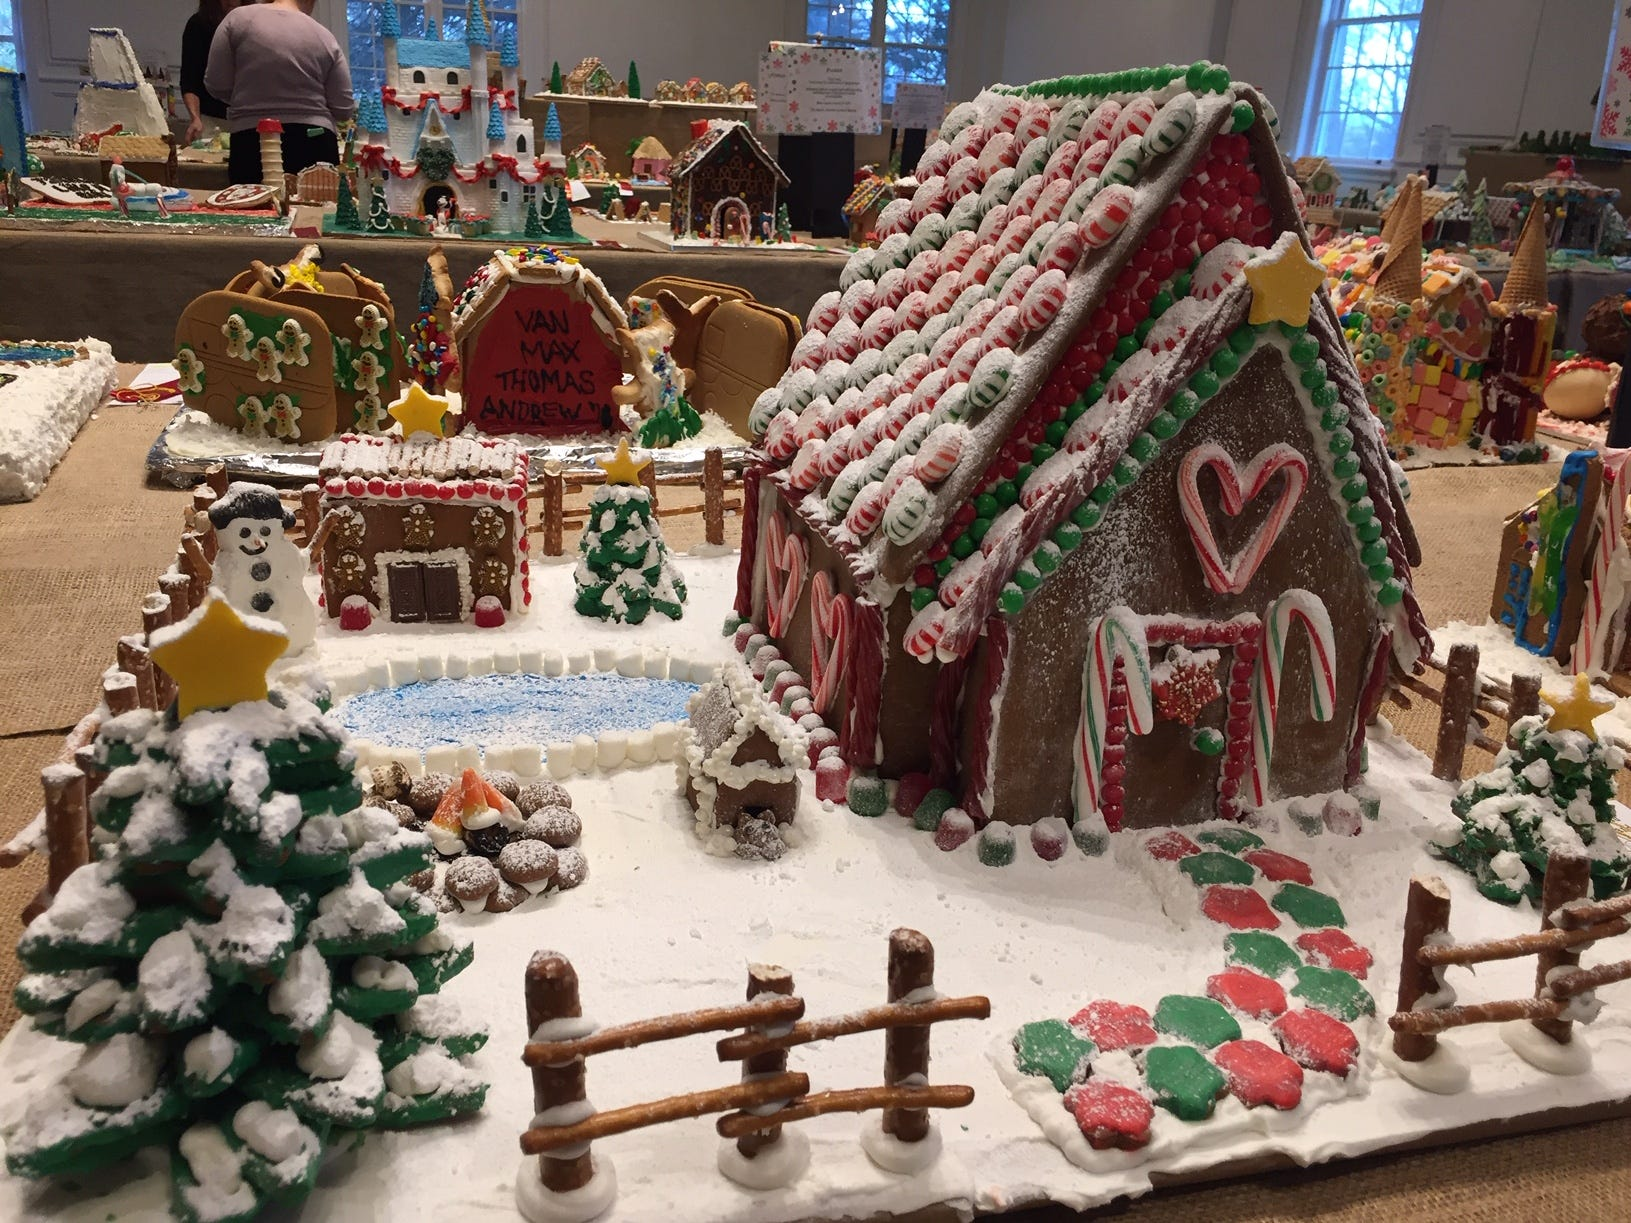 """The Christmas Cottage on Candy Cane Lane"" by the Olivo Family of Morristown at the 2018 Gingerbread Wonderland at the Frelinghuysen Arboretum. Famly category."